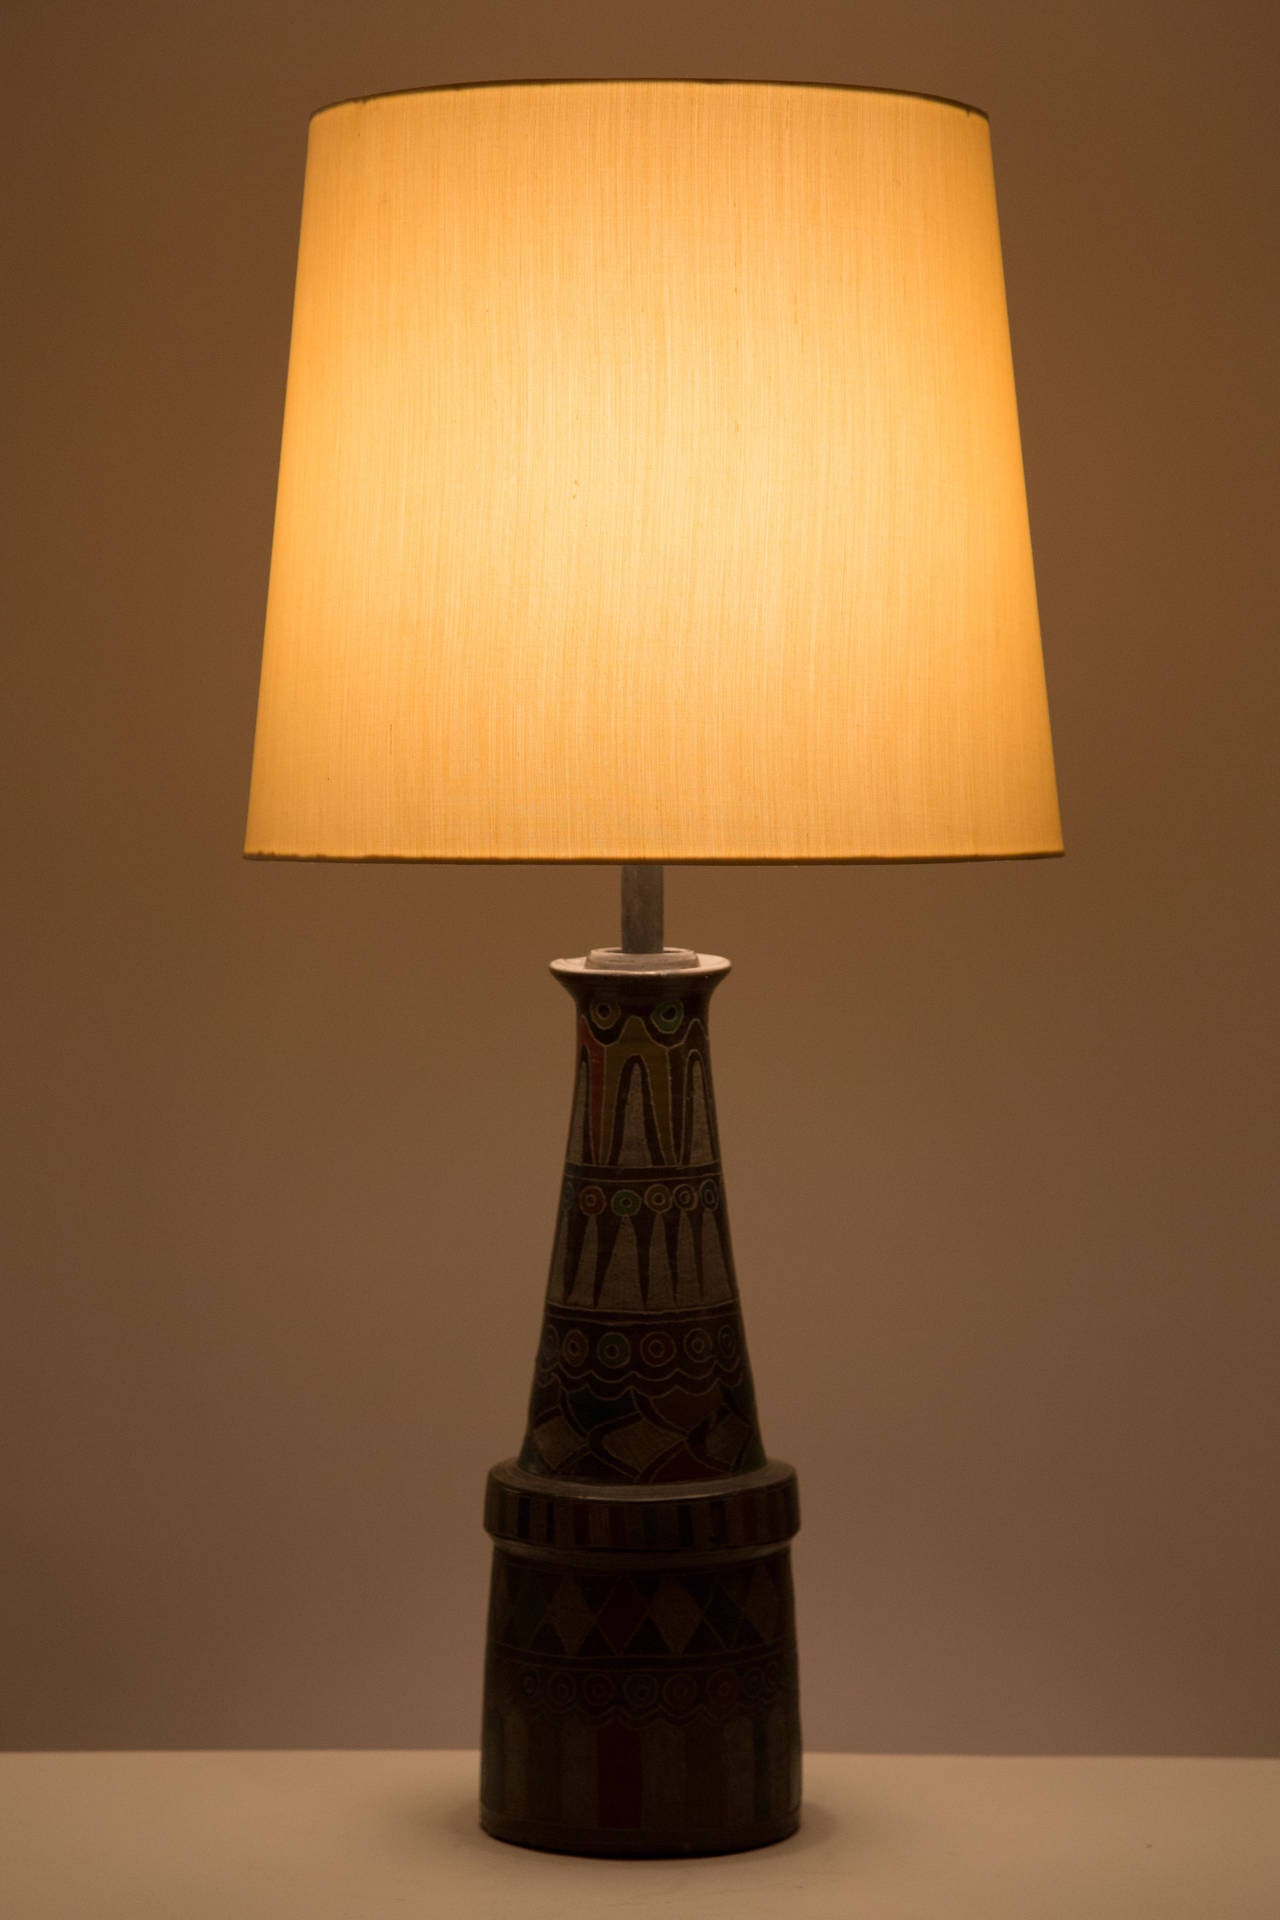 Unique Table Lamps : Unique pair of table lamps from oaxaca at stdibs